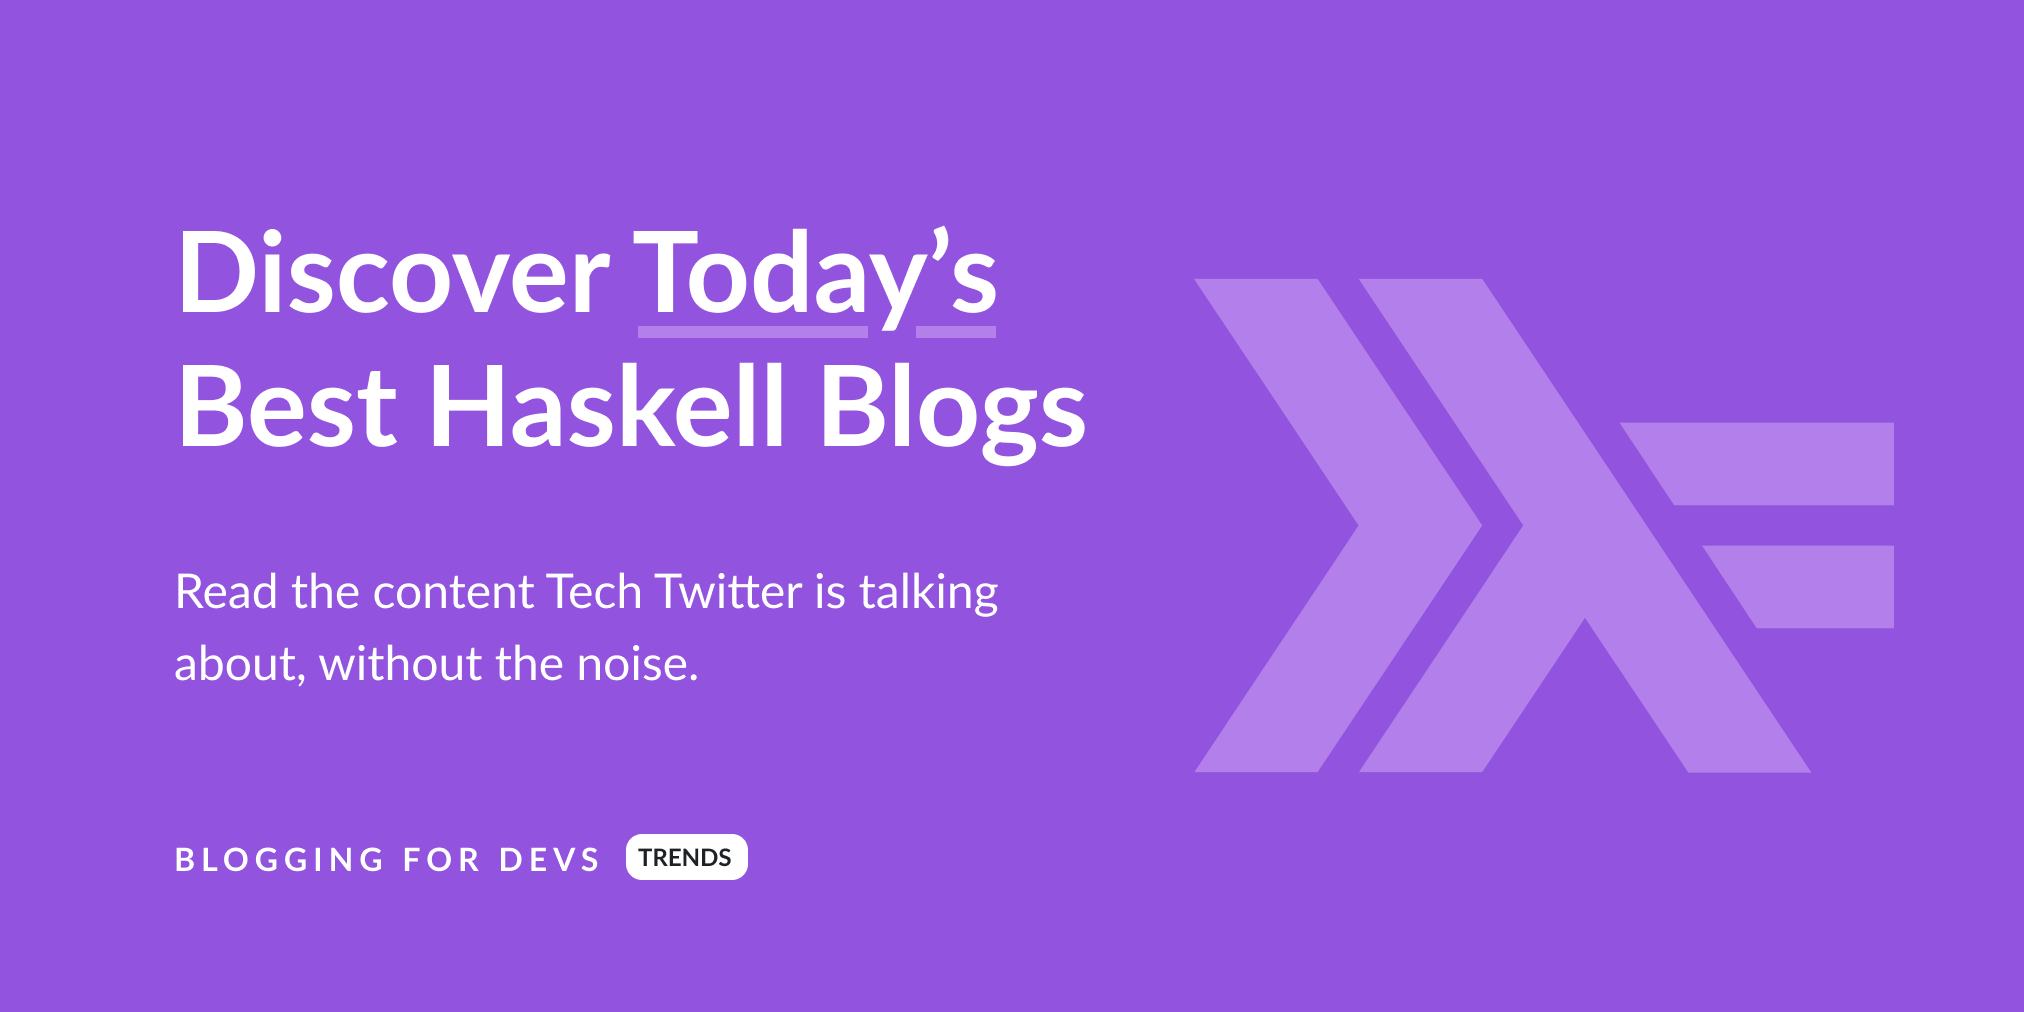 Best Haskell blogs